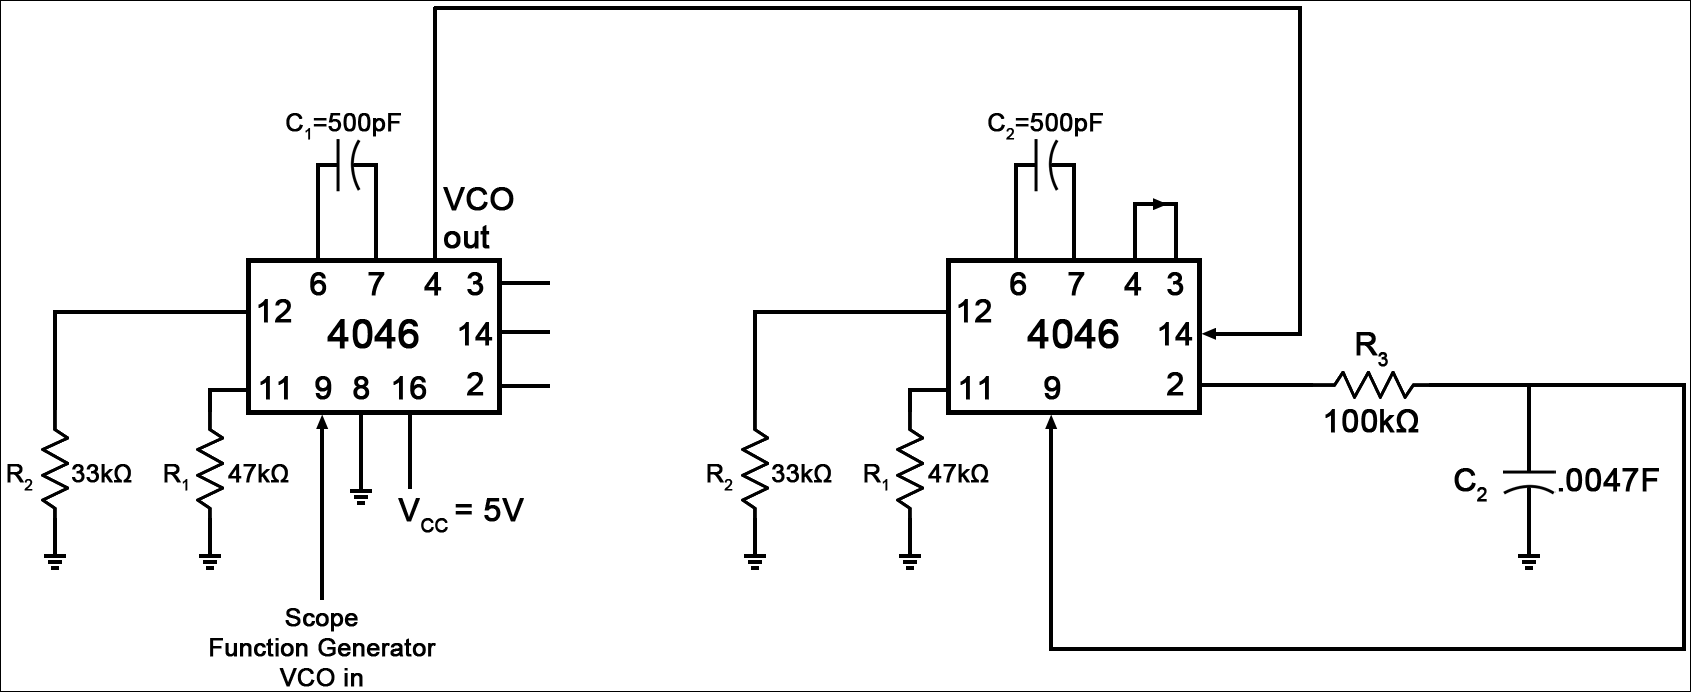 Fm Modulation And Demodulation Circuit Diagram Pictures To Pin On 80khz Modem Tom Hoctor Figure 1 Utilizing The 4046 Phase Loop Configuration